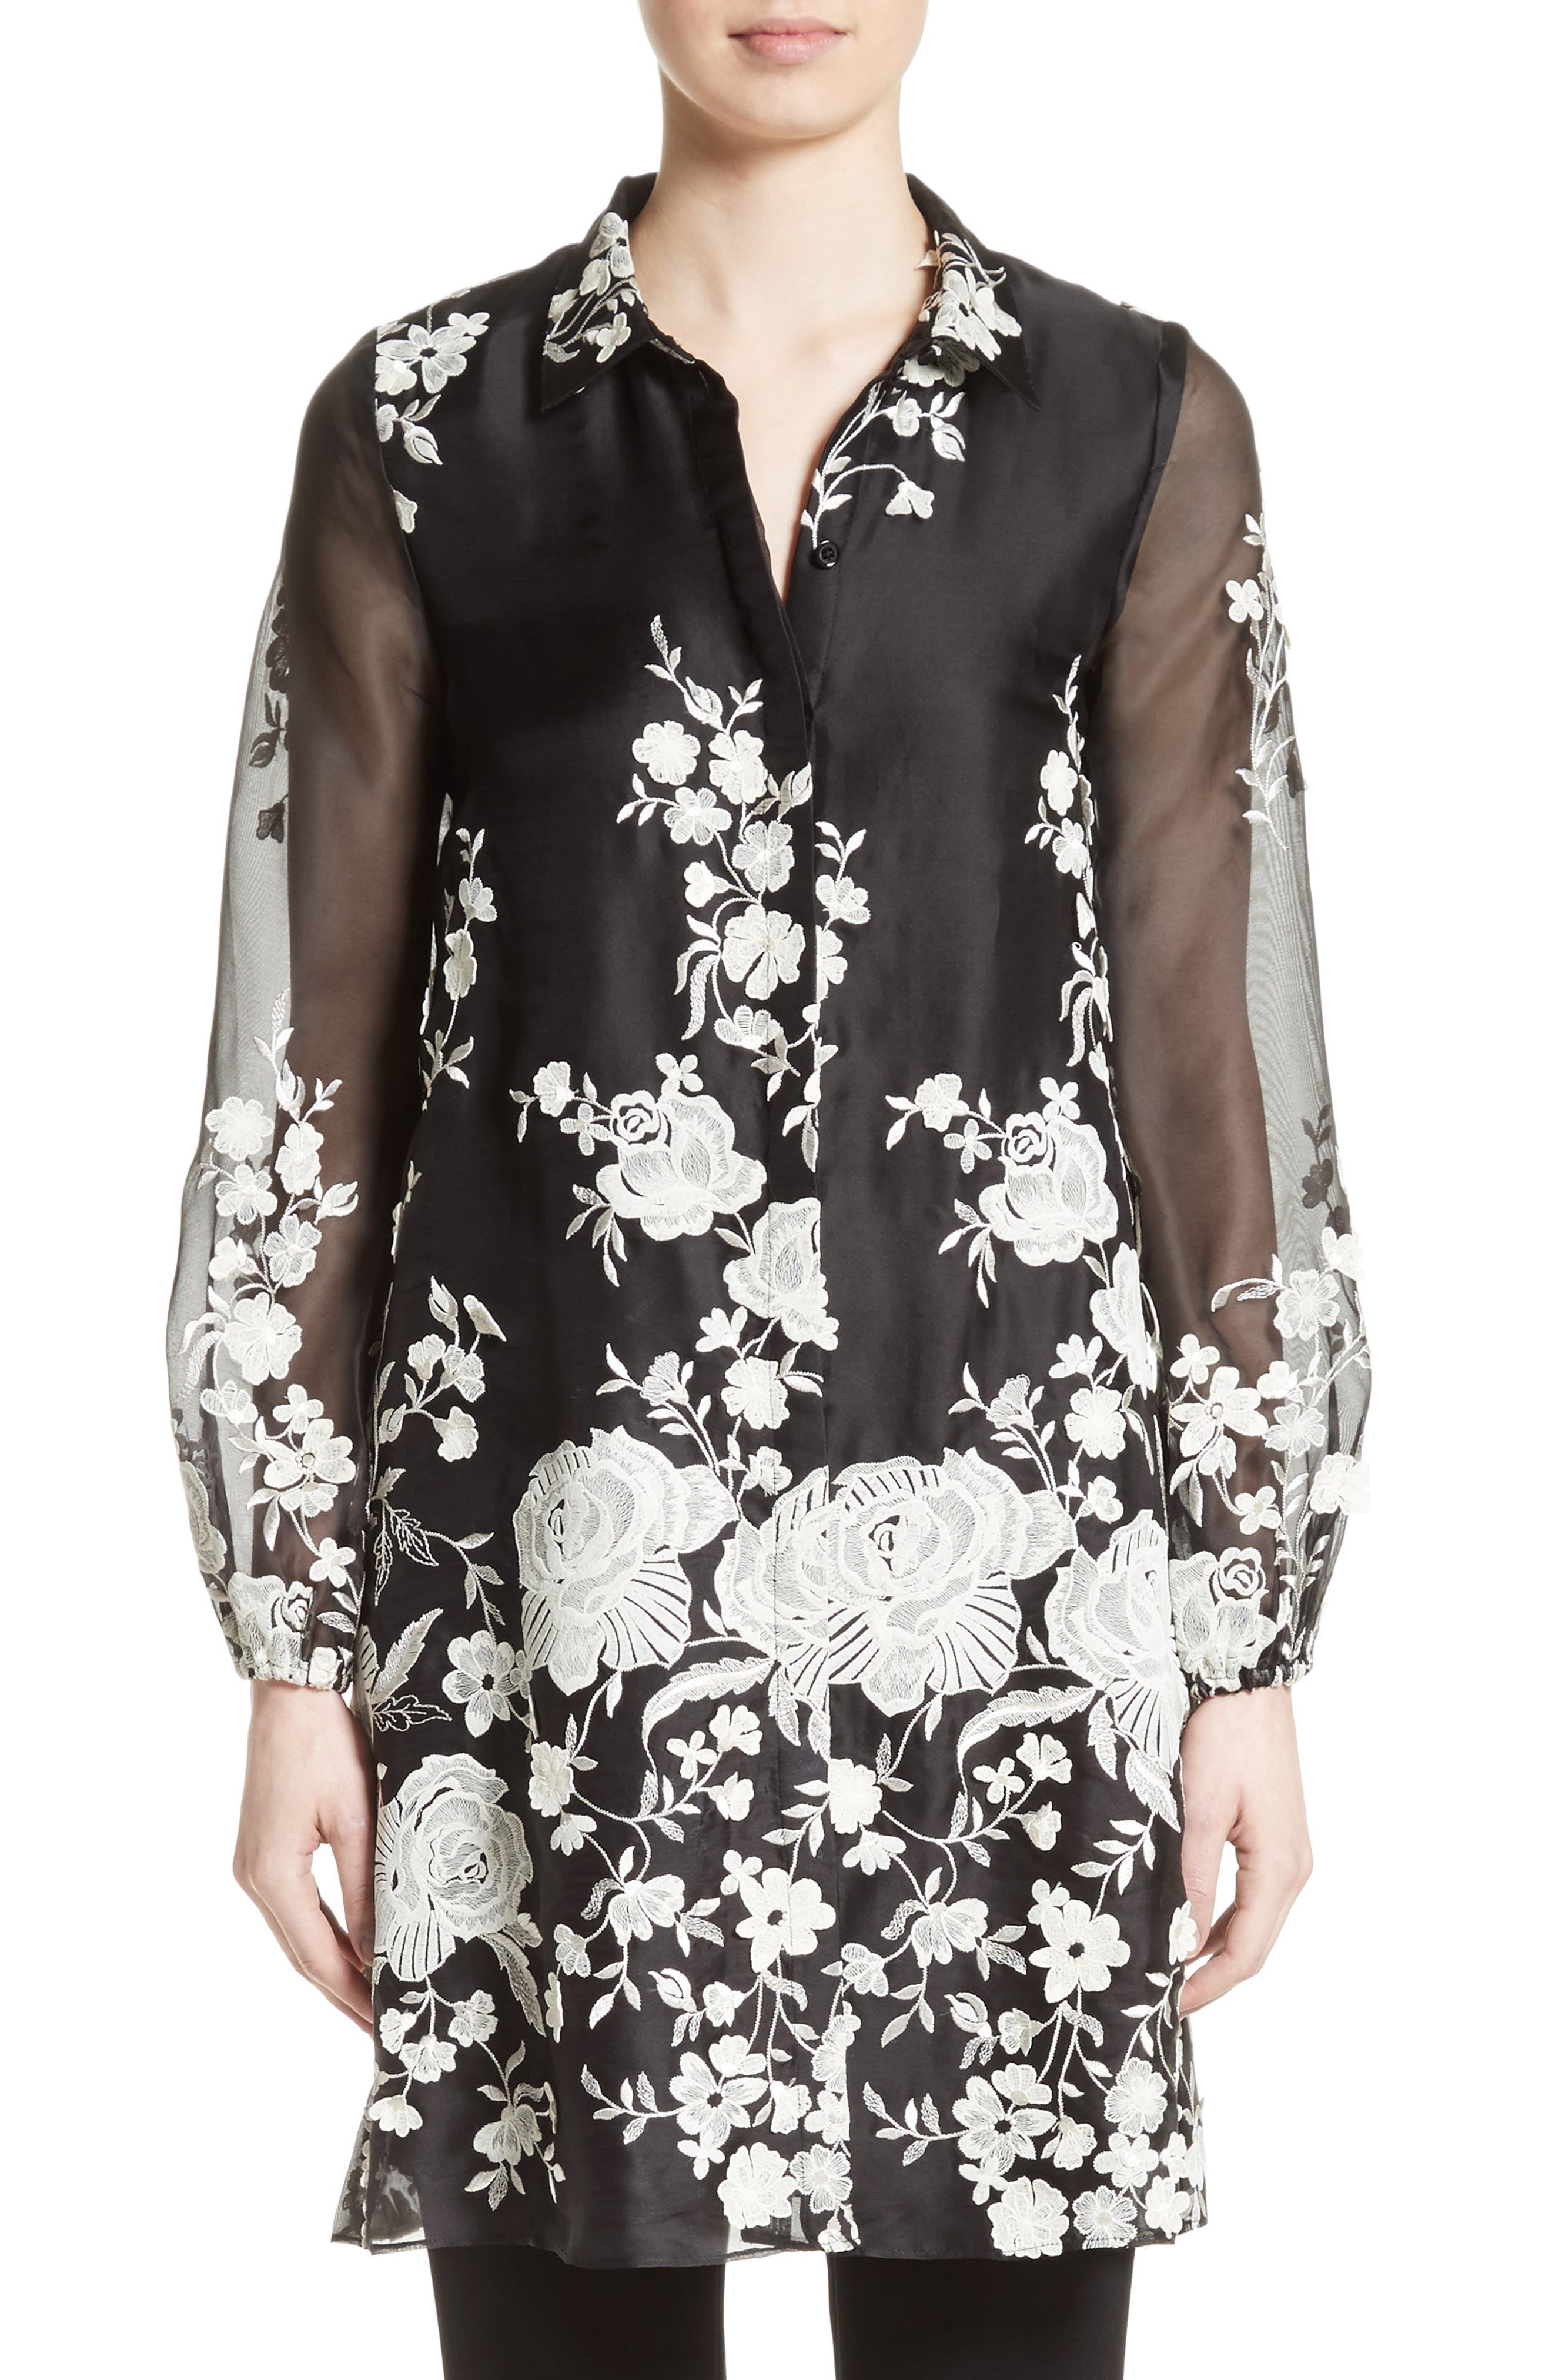 Co Floral Embellished Tunic Top